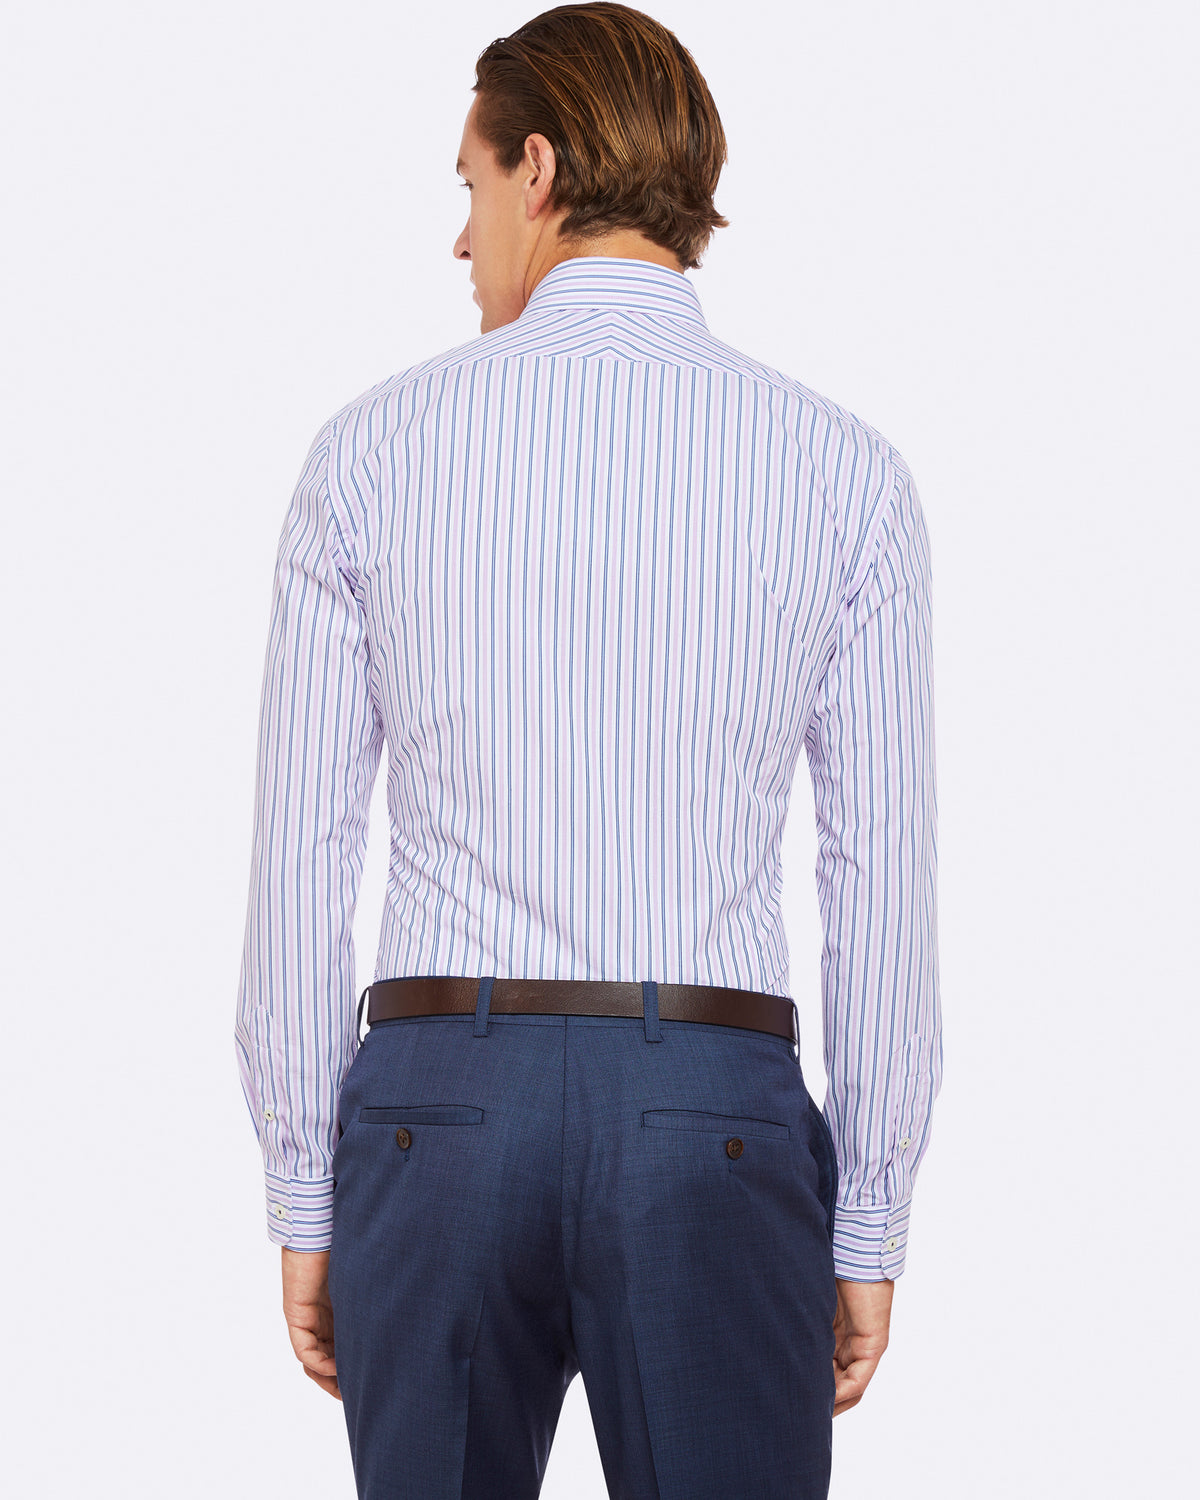 BECKTON STRIPE SHIRT